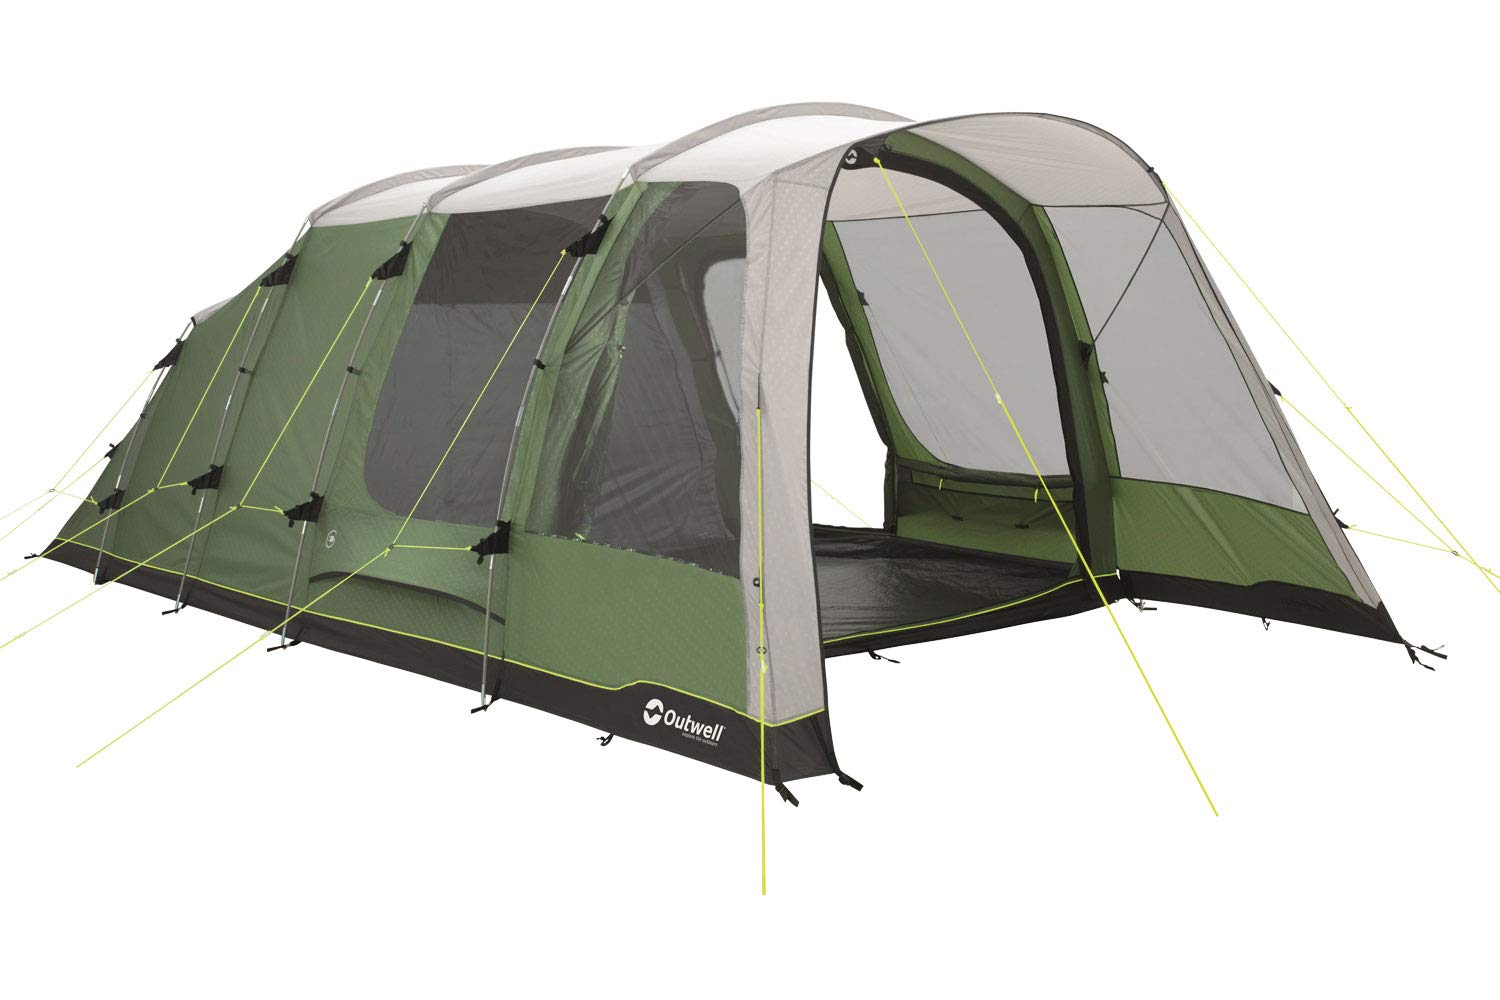 super popular e48a9 9acc0 Outwell Willwood 5 Person Group Tent Black, Camouflage ...